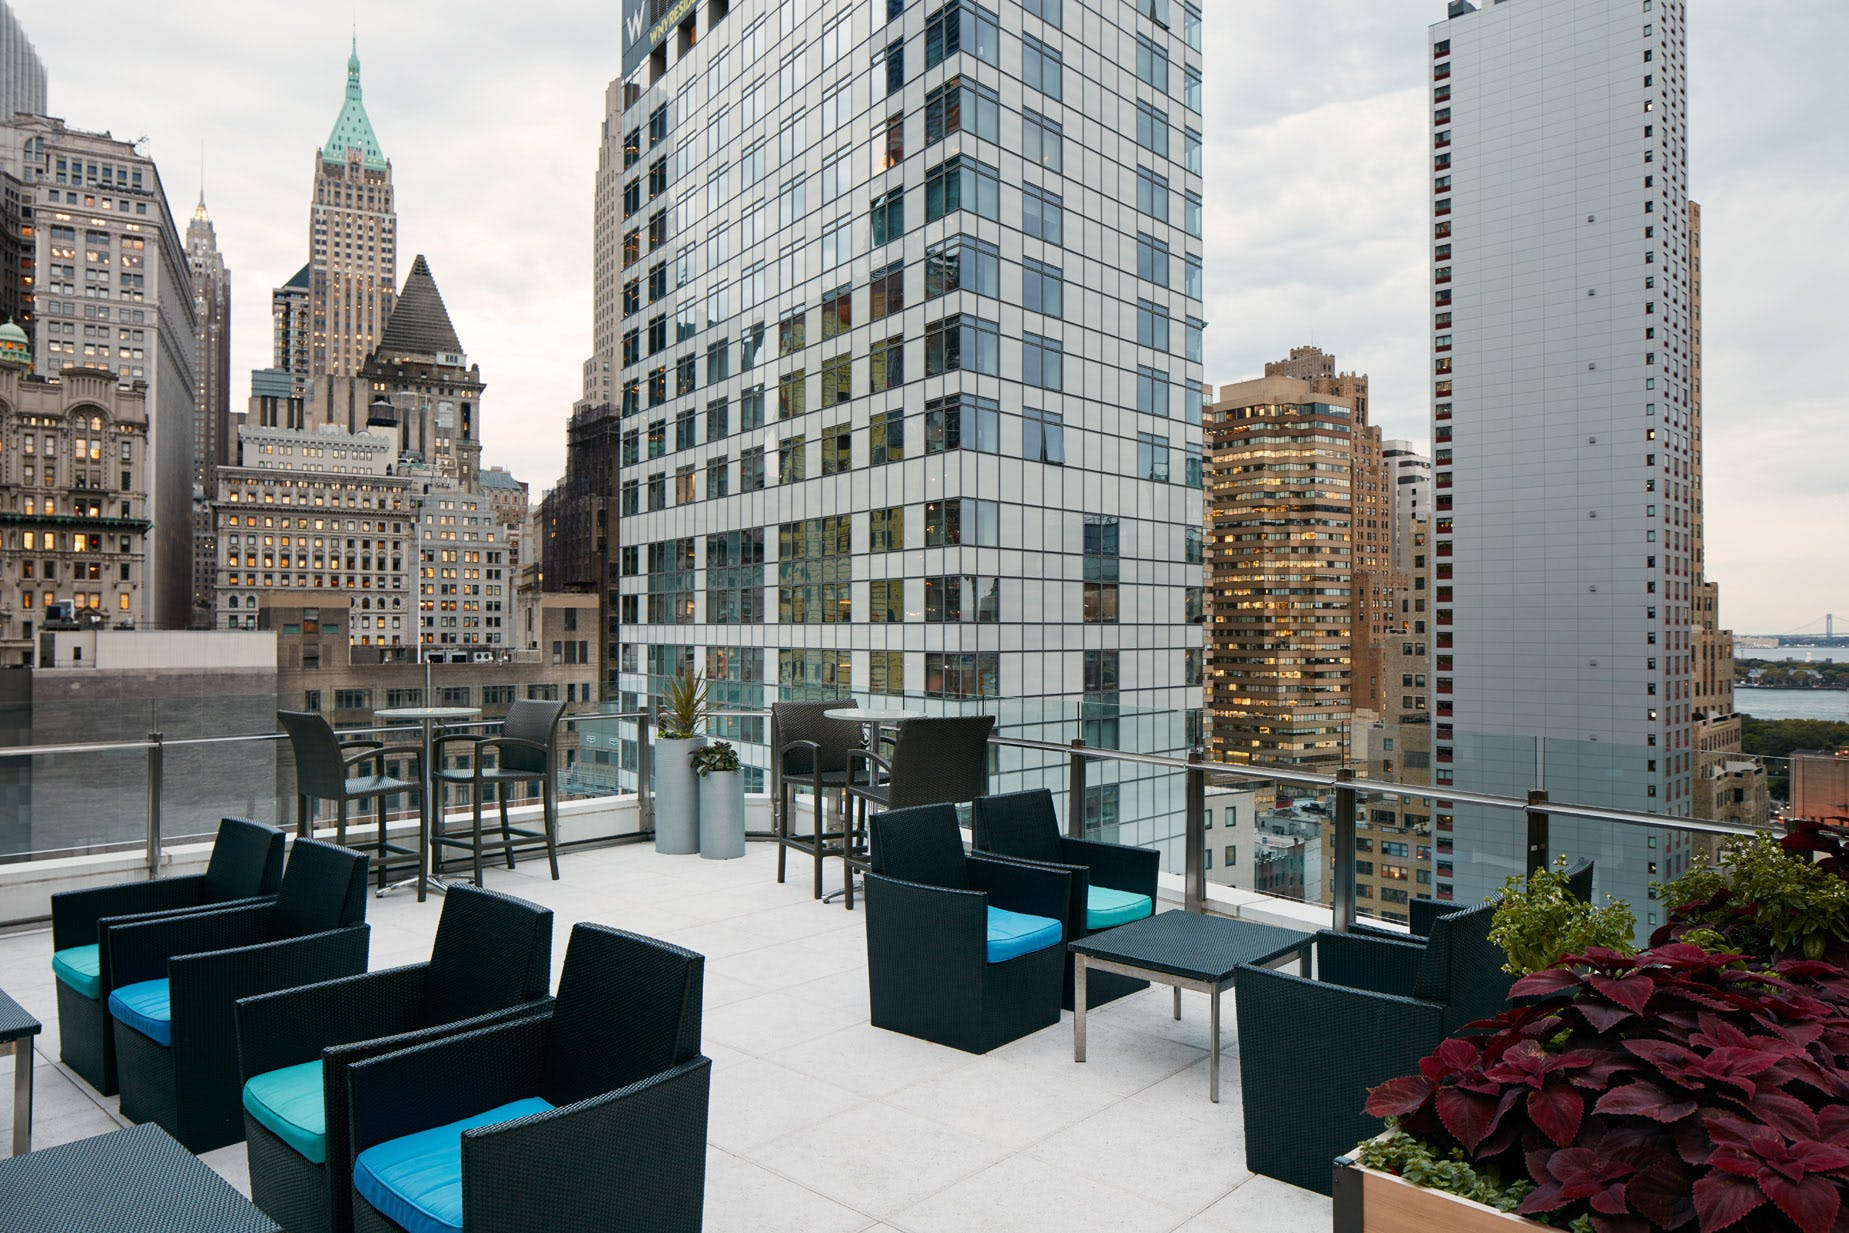 Sun Terrace at Club Quarters Hotel, World Trade Center